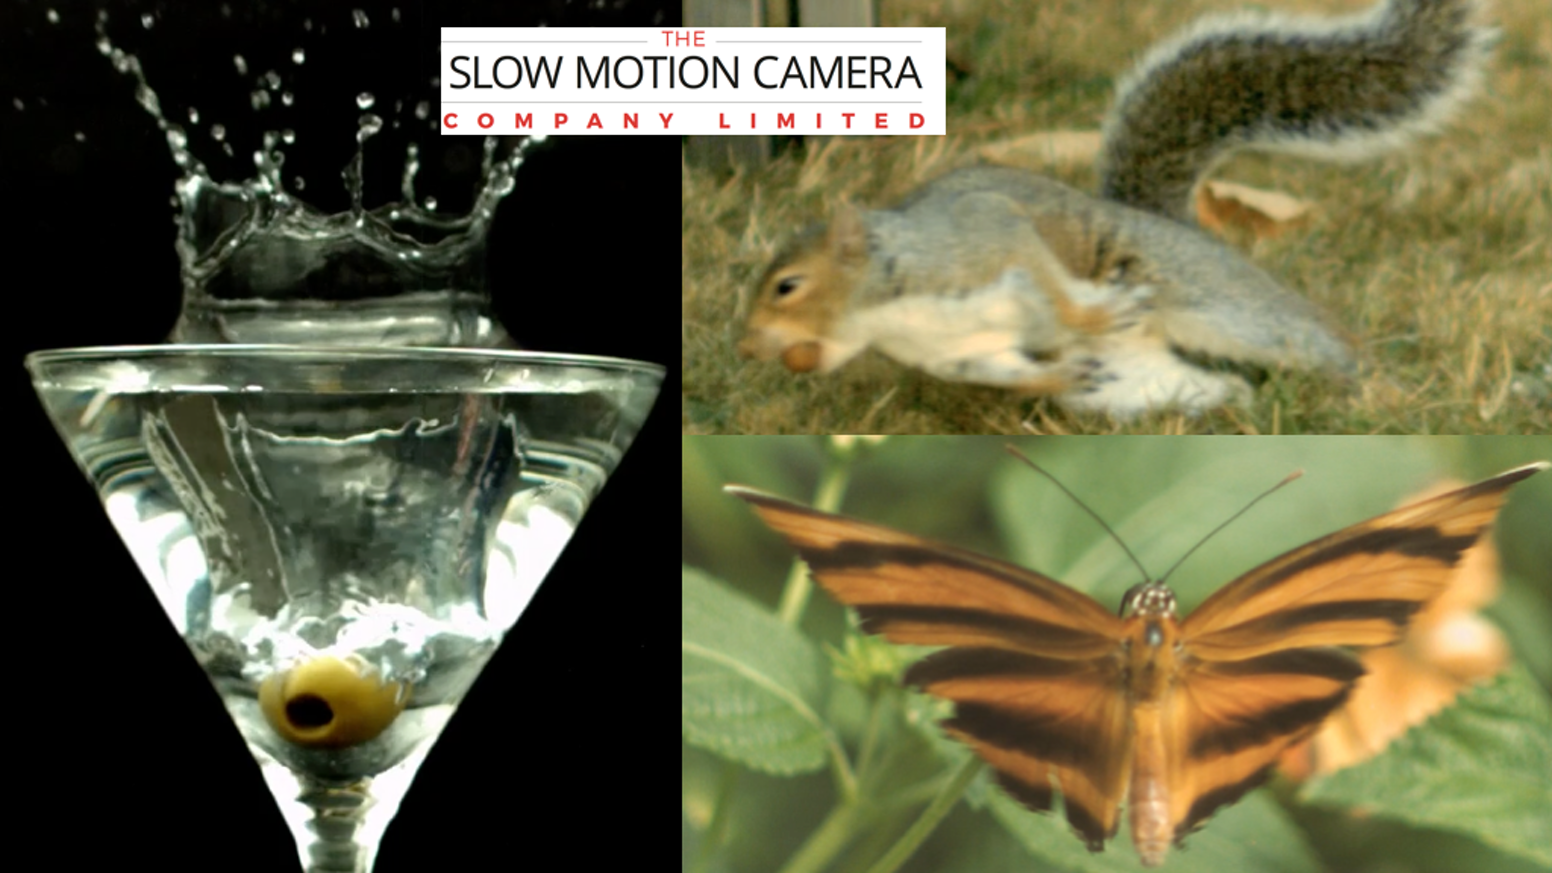 the low cost high frame rate camera